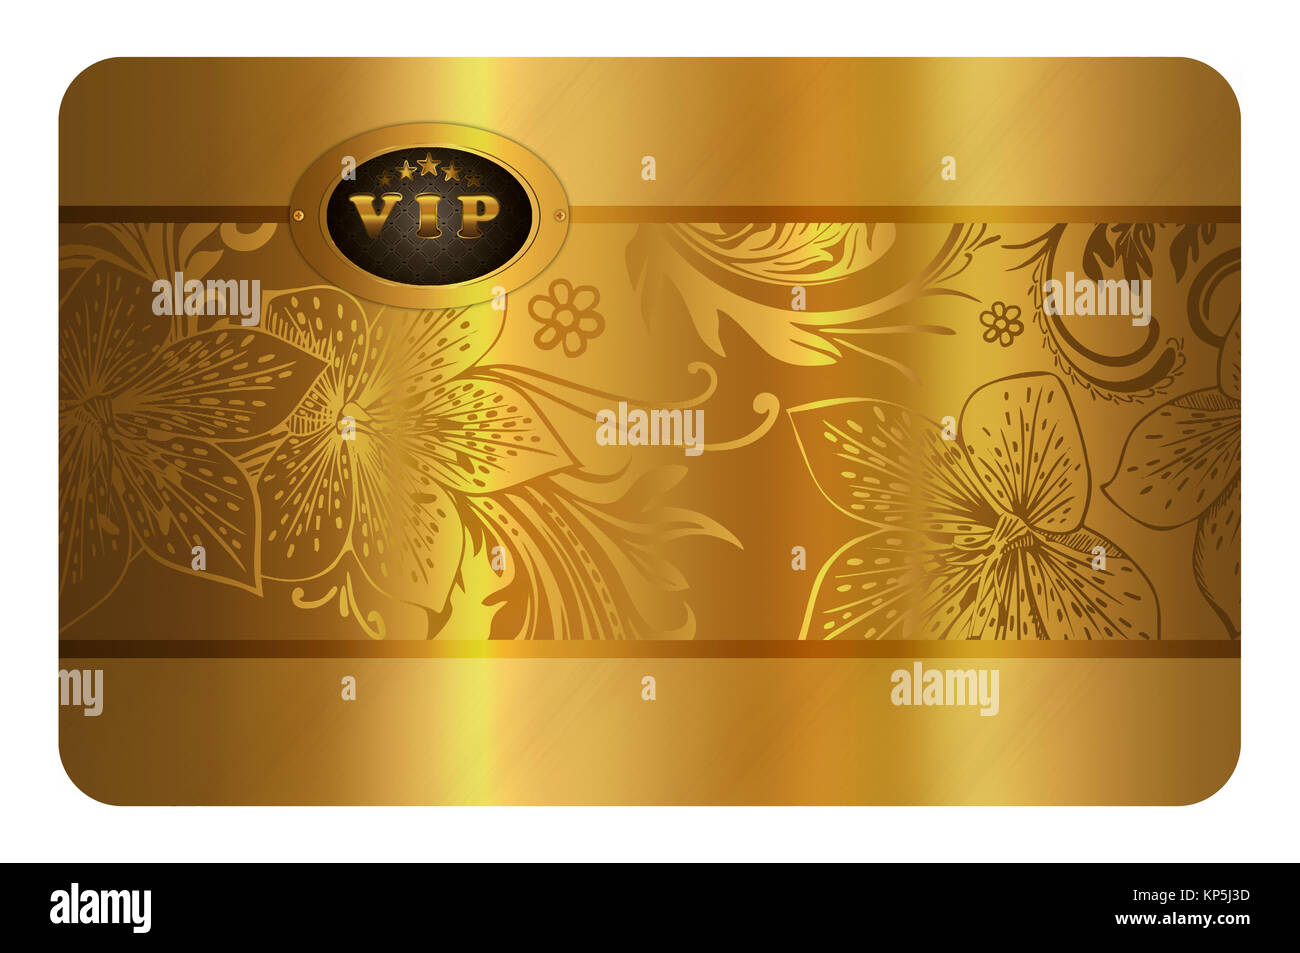 Gold Business Card Template Gold Floral Background For The Design Of Stock Photo Alamy